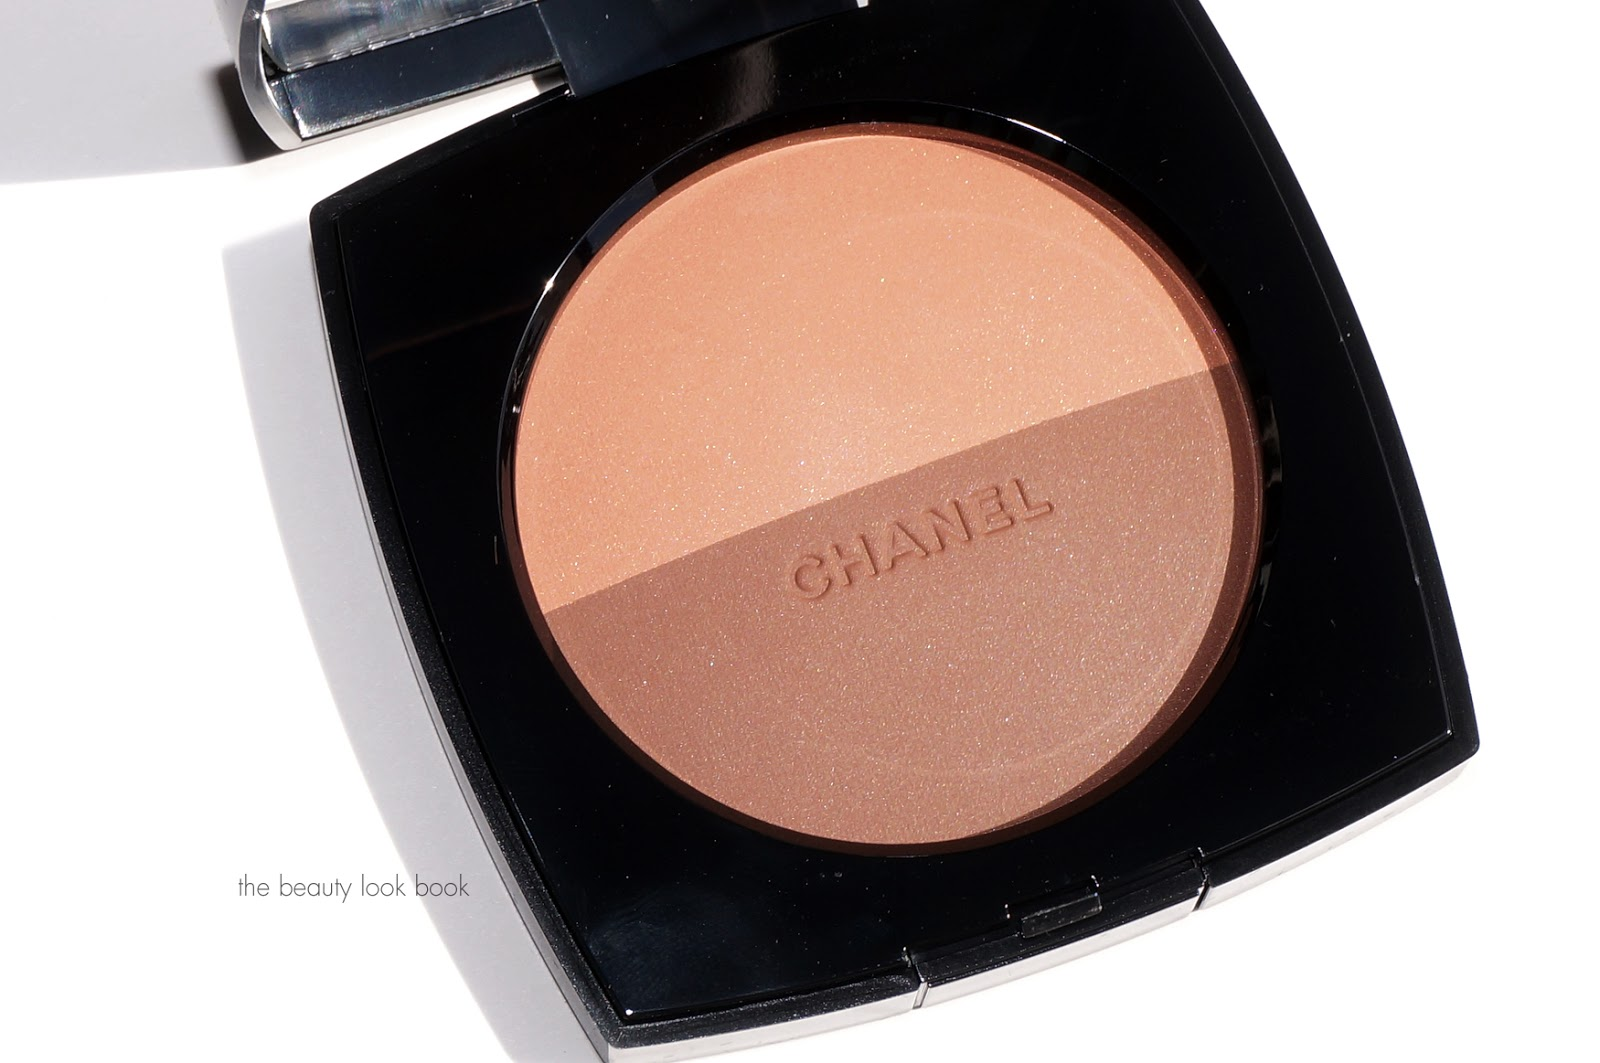 Chanel Les Beiges Duos 01 and 02 for Summer 2016   The Beauty Look Book ff1a0f867be